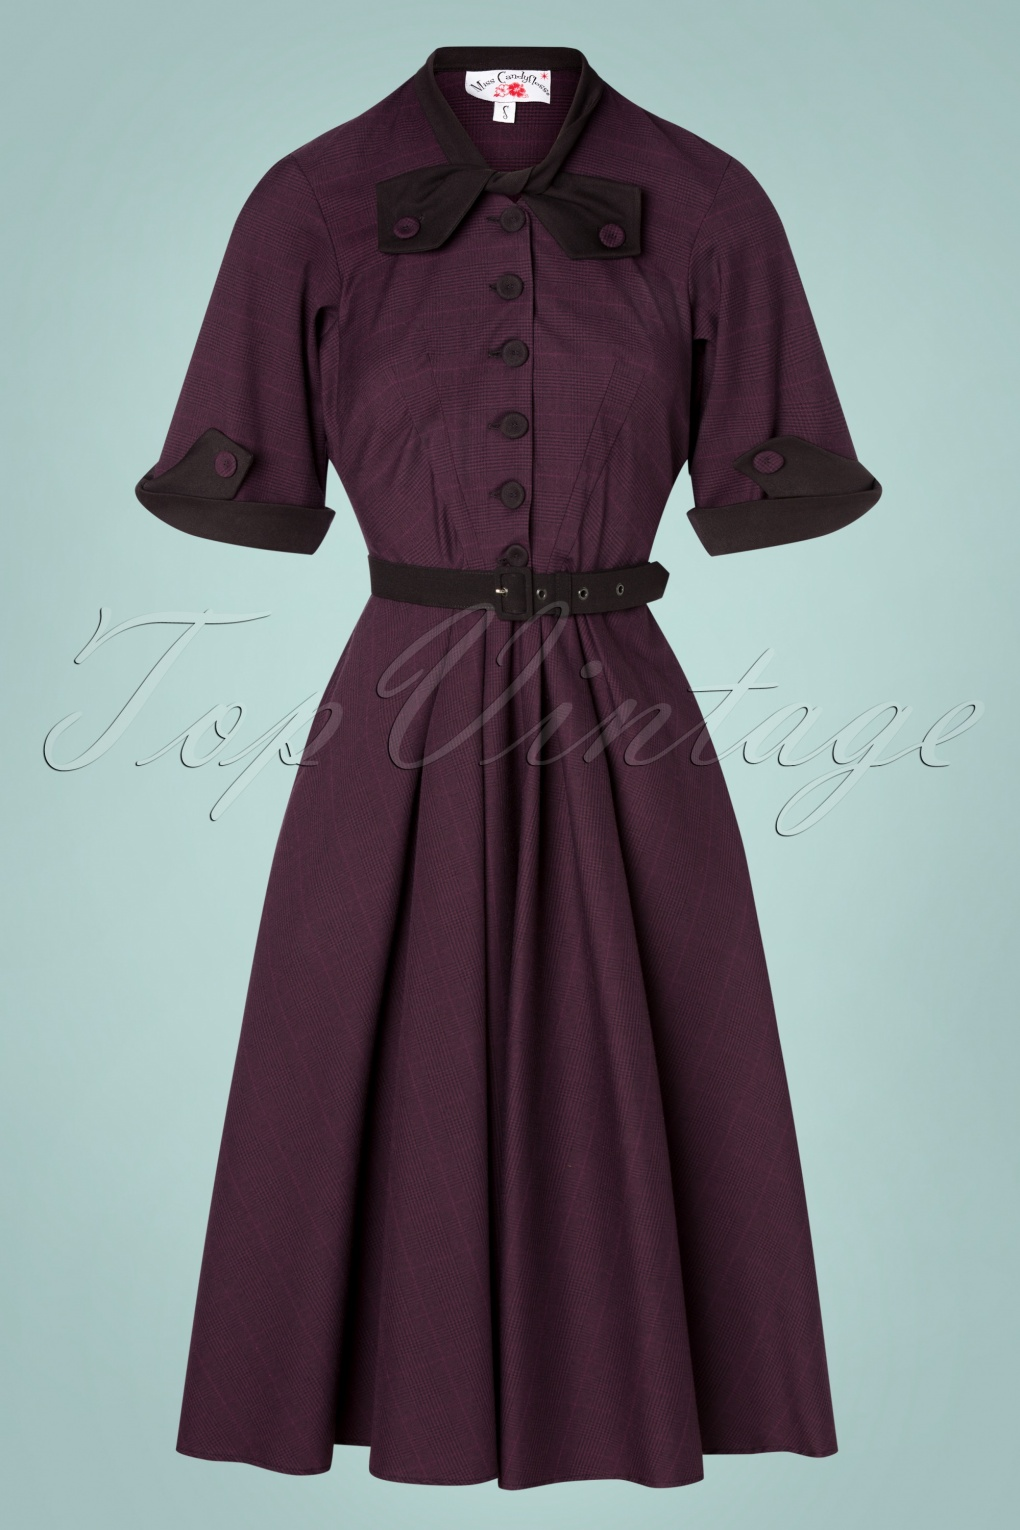 Vintage Shirtwaist Dress History TopVintage exclusive  50s Lea Dora Swing Dress in Purple £115.71 AT vintagedancer.com